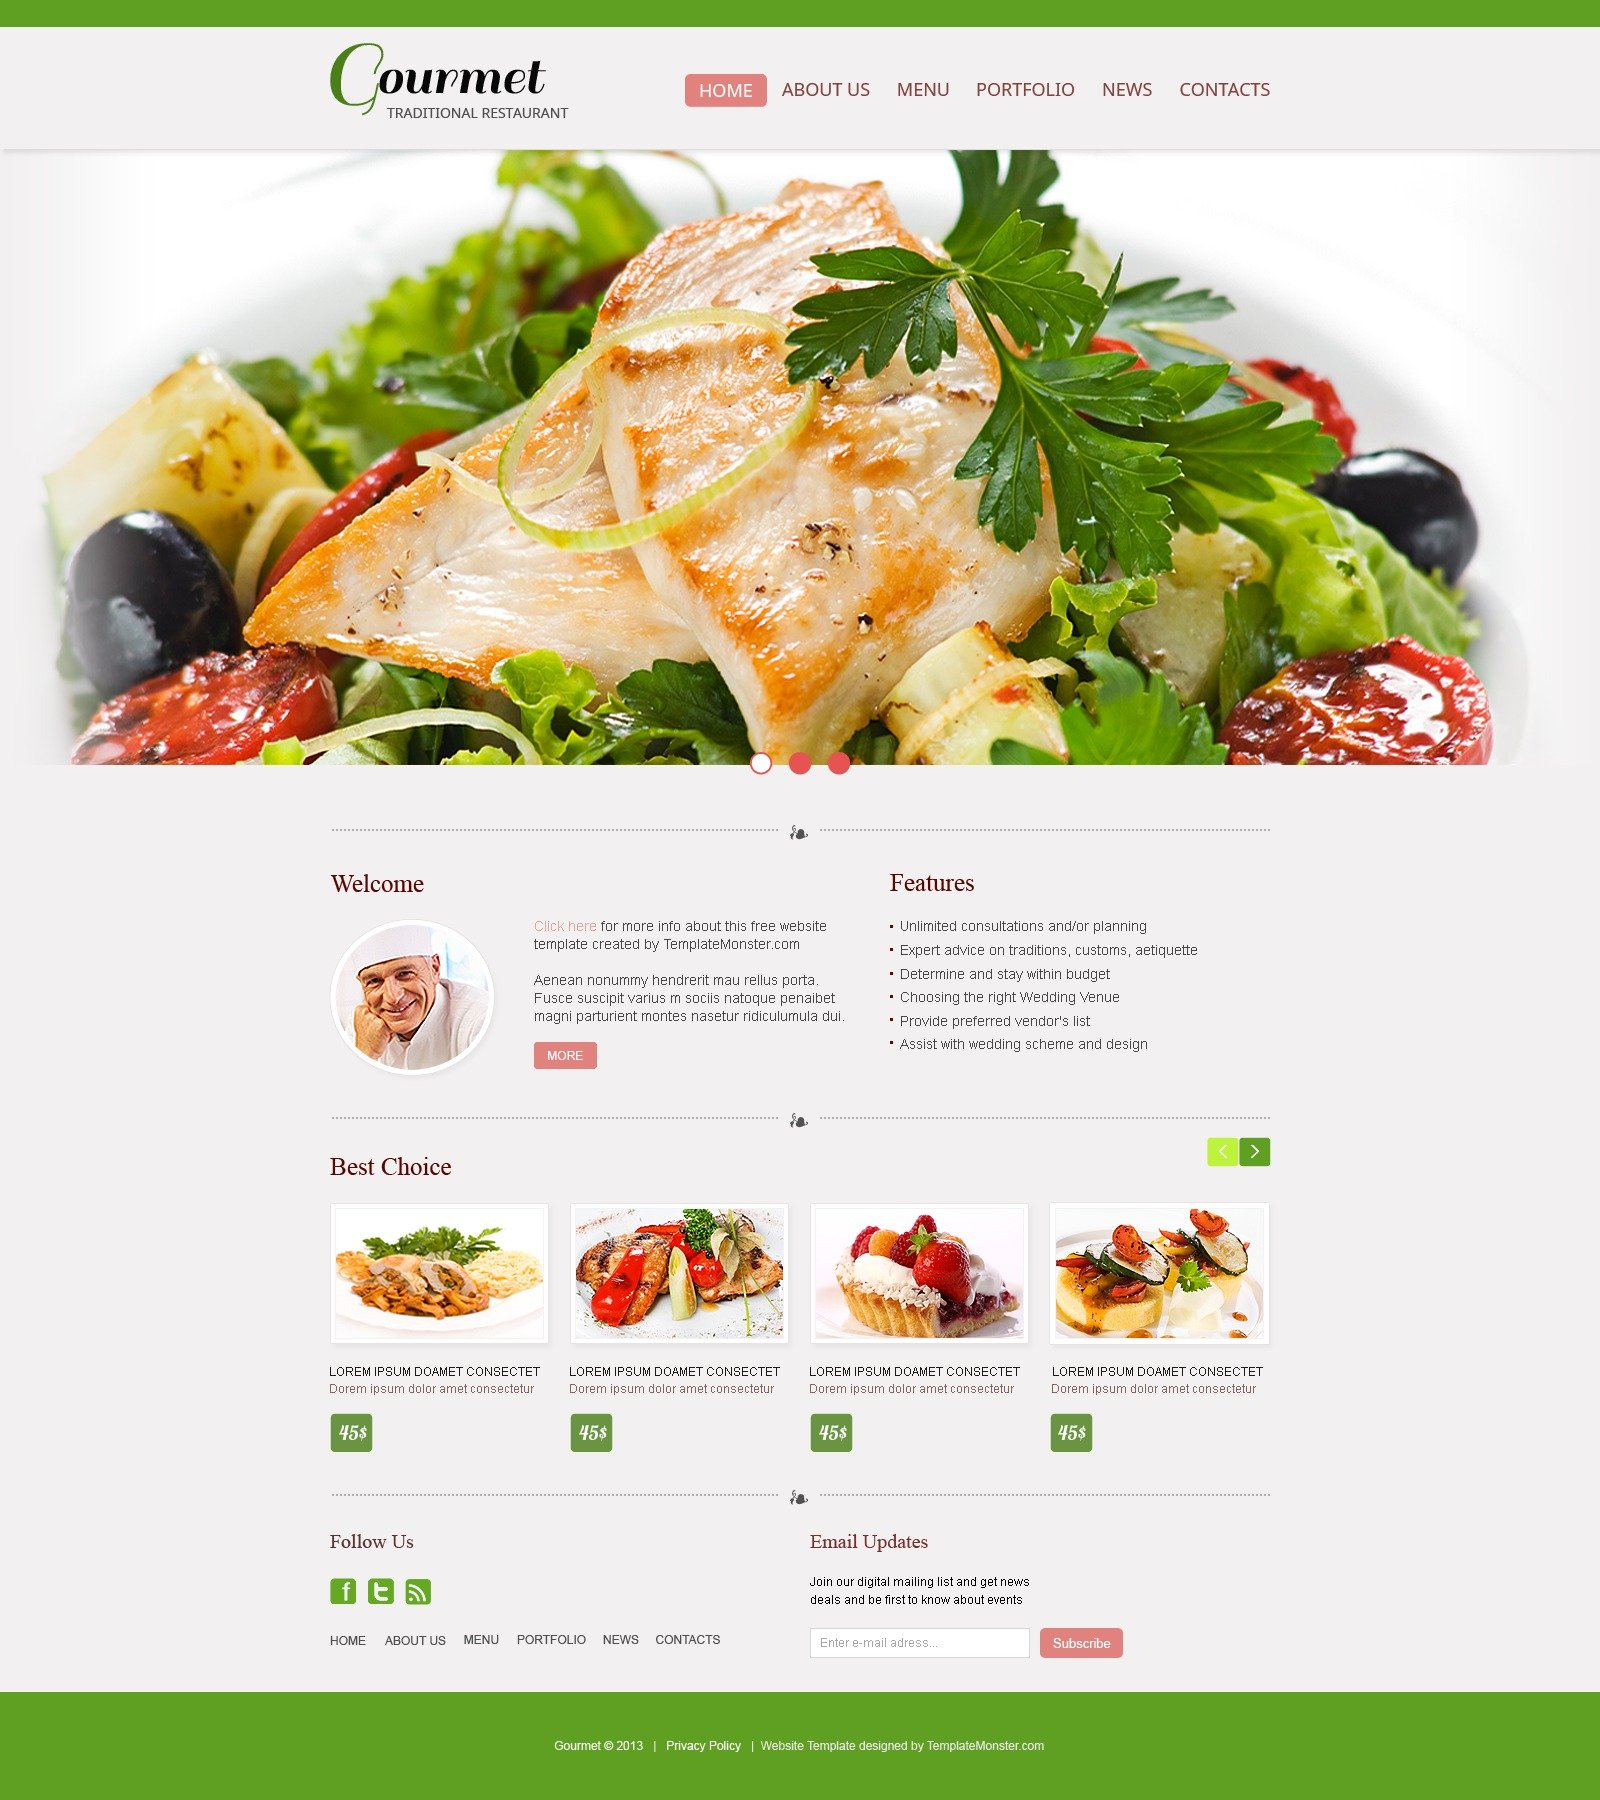 Restaurant Websites And Number Of Online Reviews